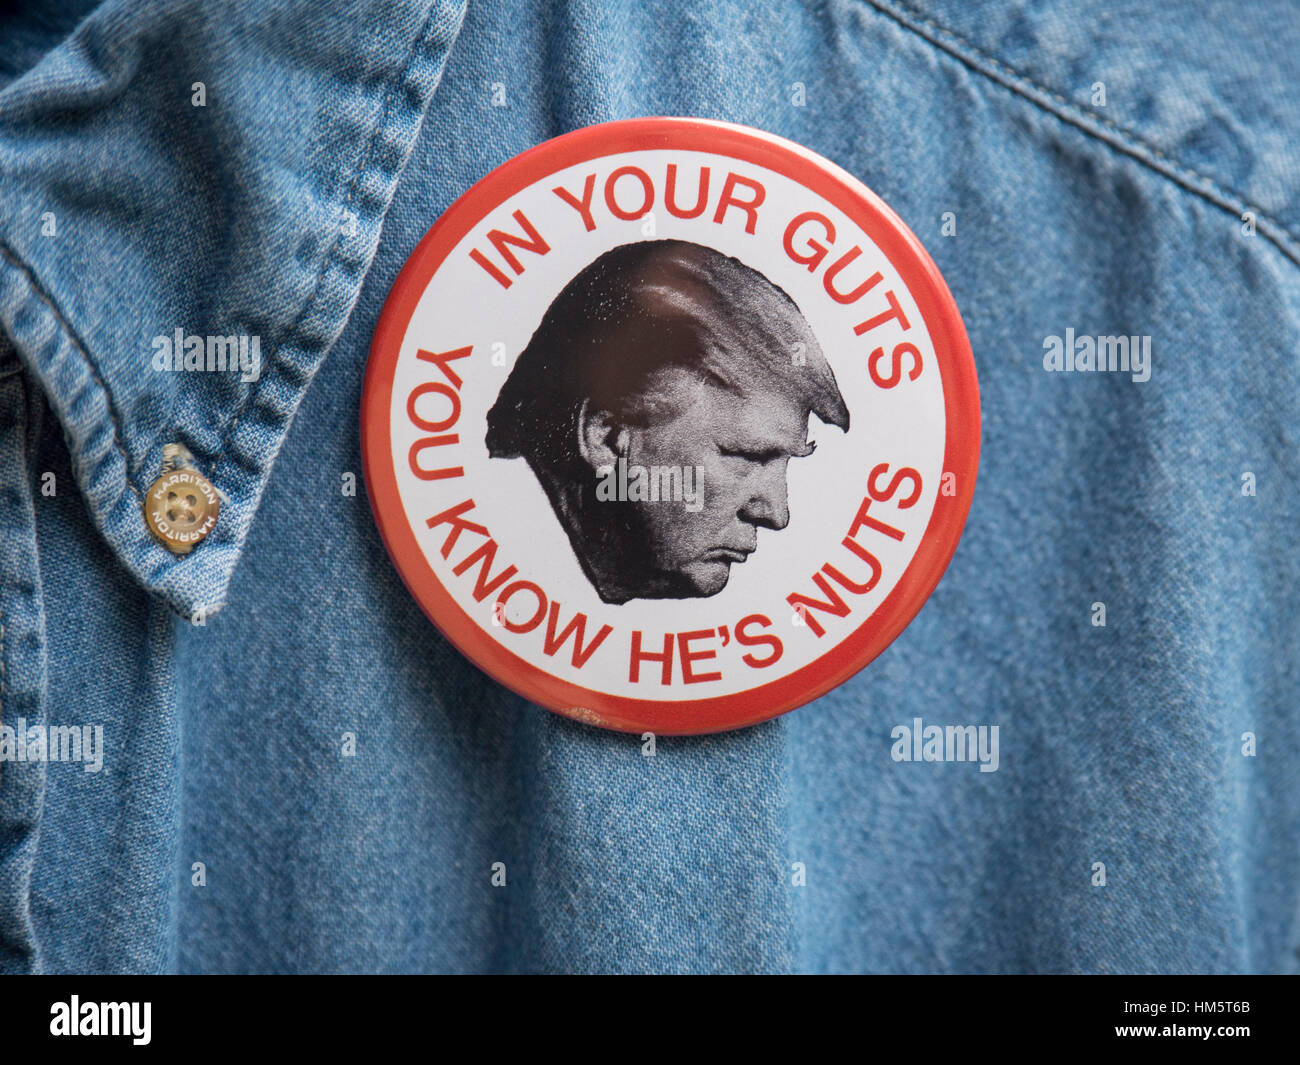 In Your Guts You Know He's Nuts Donald Trump protest button worn by a man demonstrating against the Trump administration - Stock Image